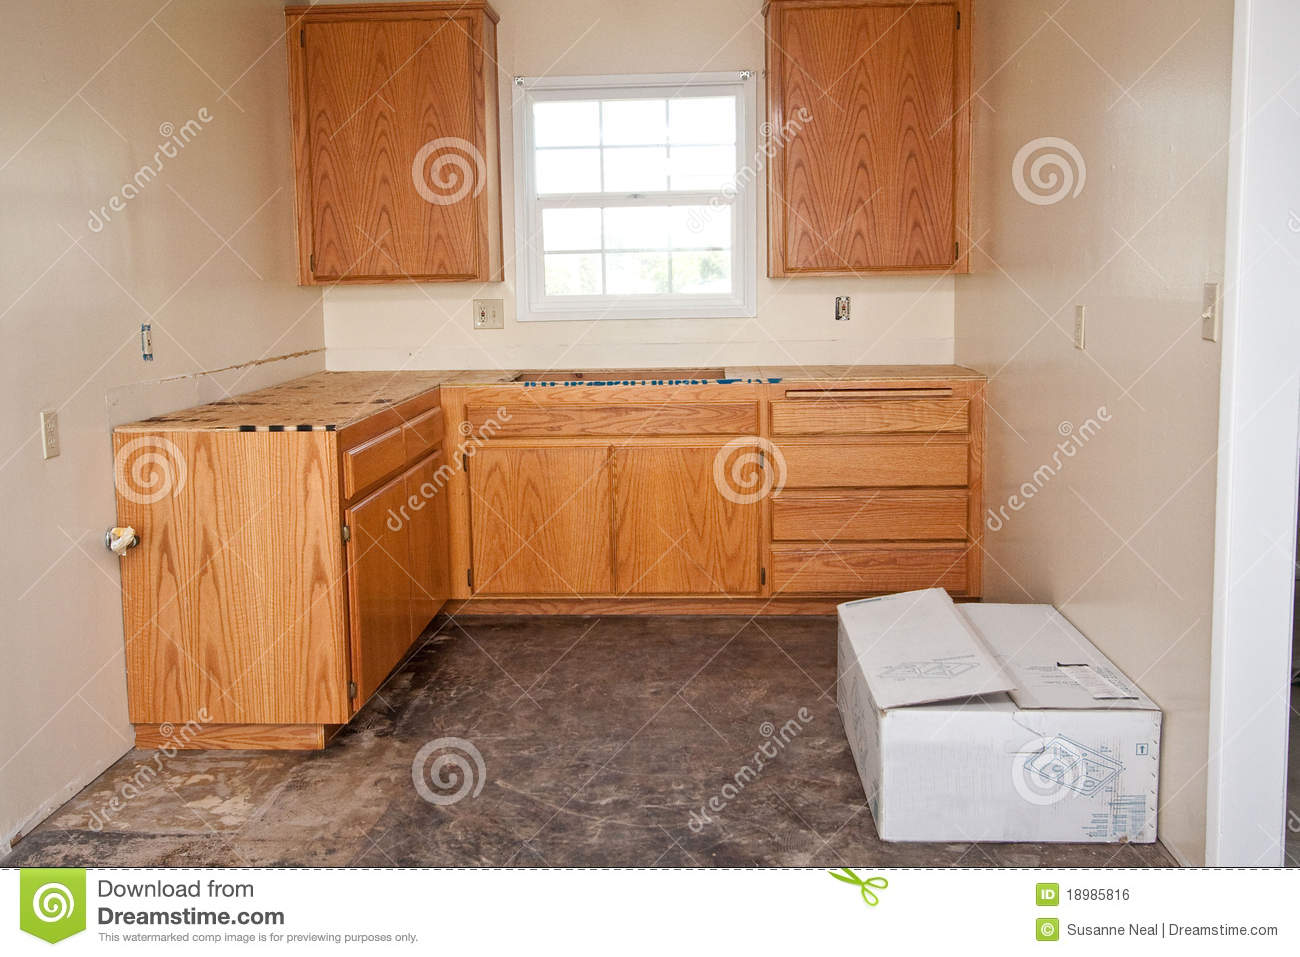 stock photography kitchen cabinets countertop image kitchen cabinet countertop Kitchen cabinets without countertop Royalty Free Stock Image